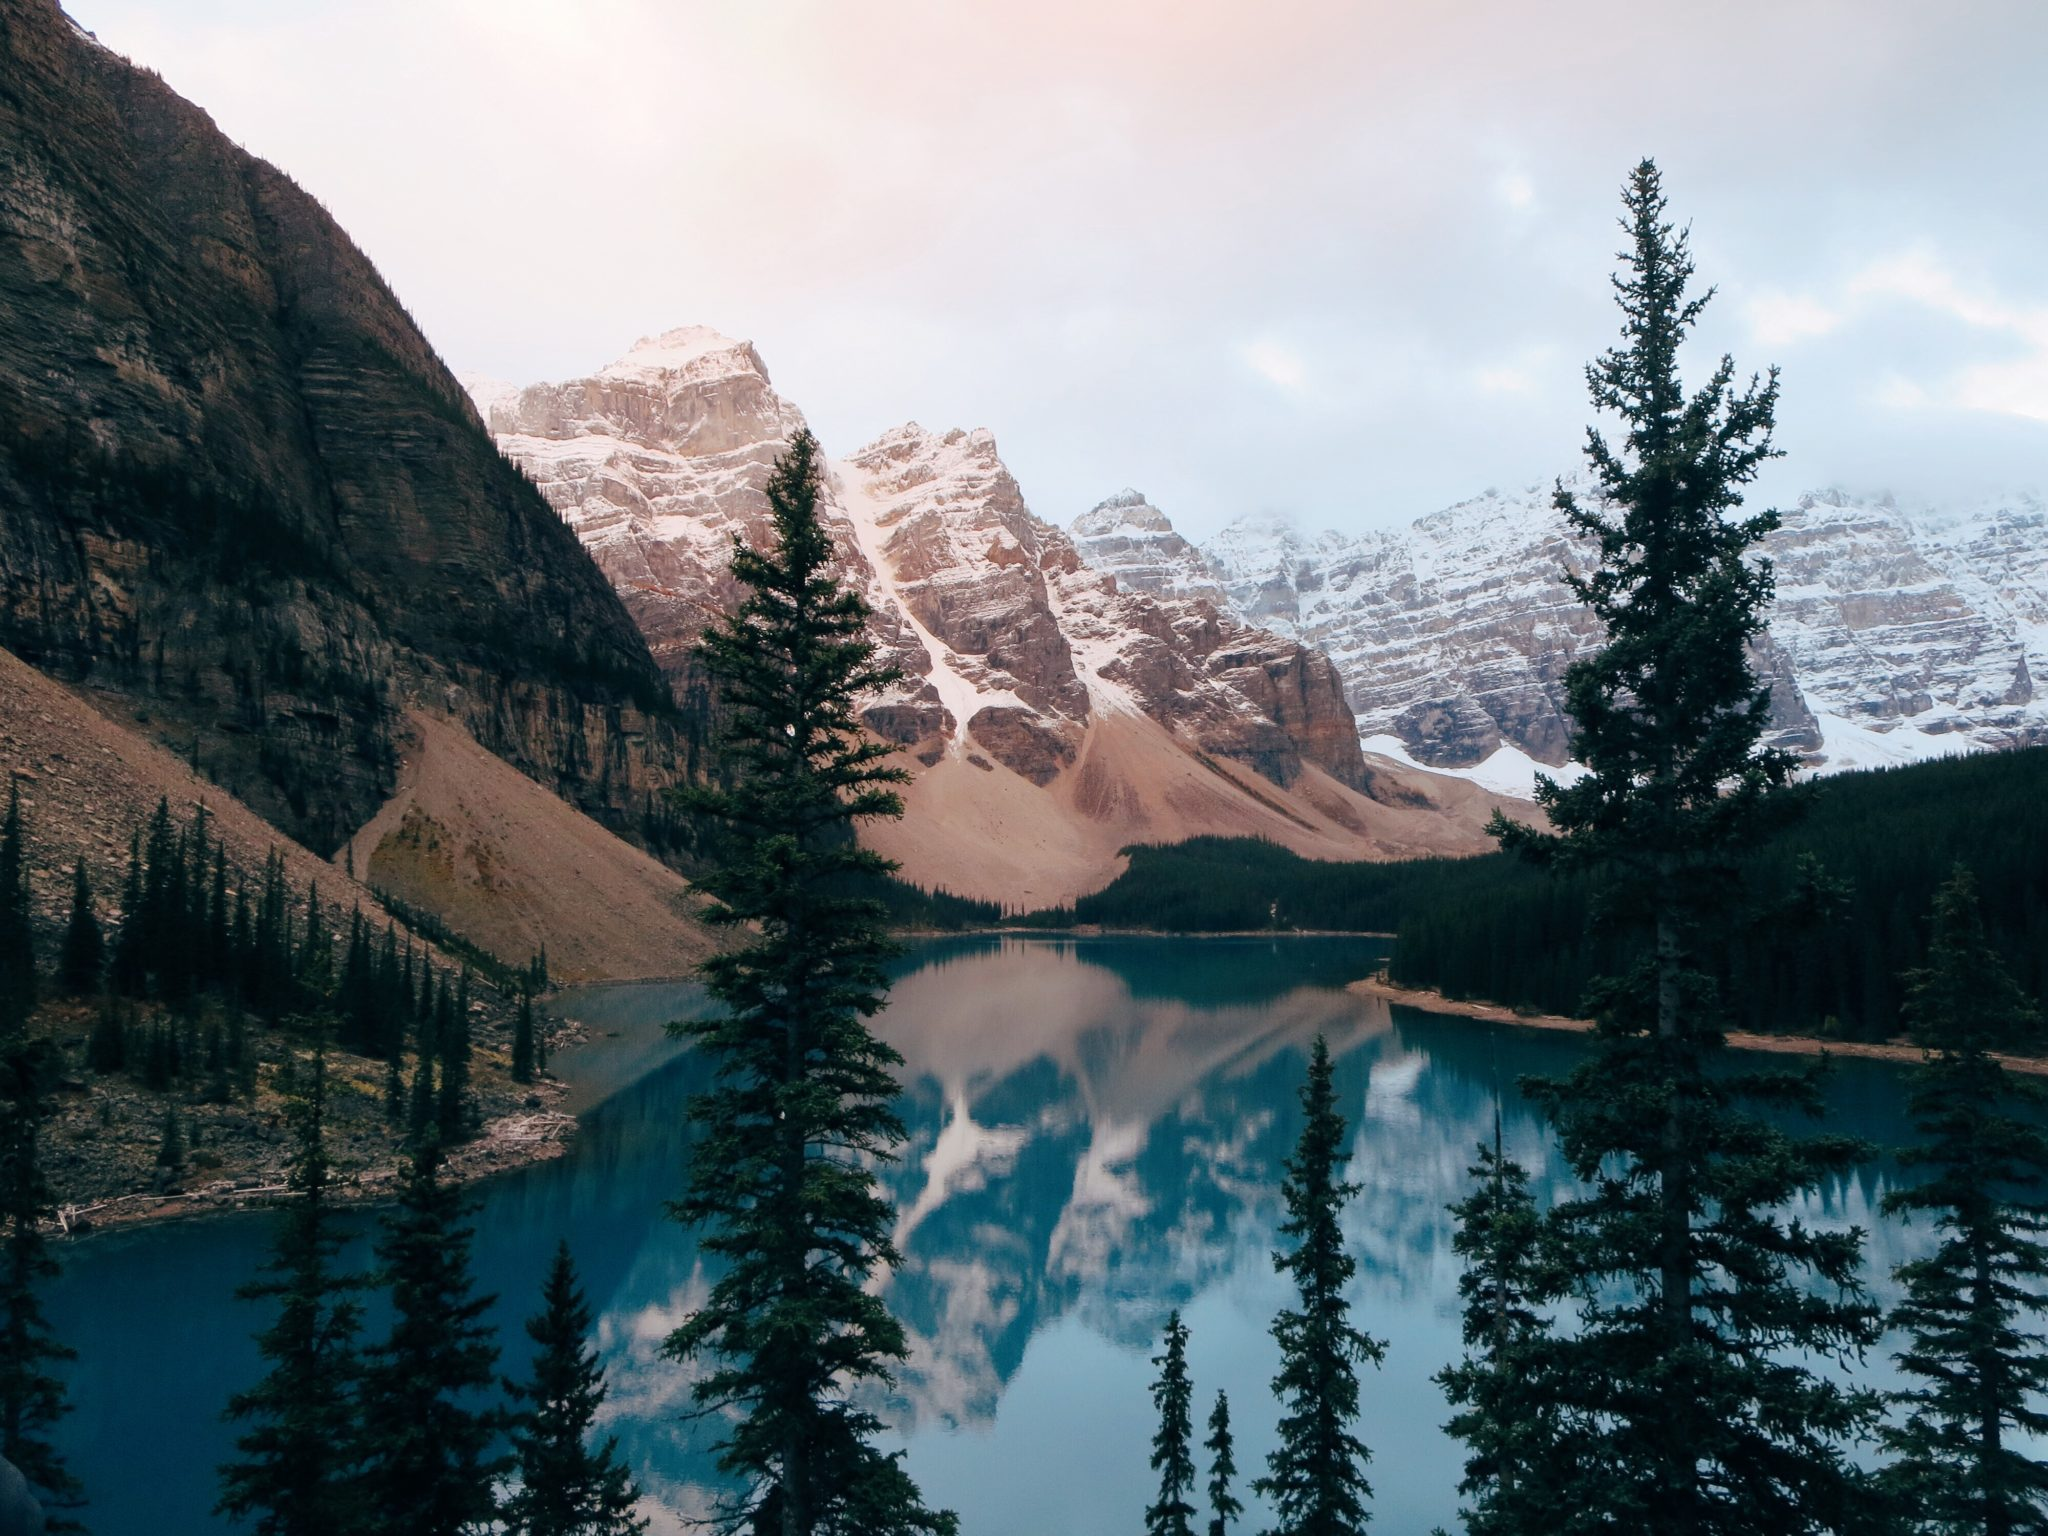 Banff's Most Beautiful Lakes: Moraine Lake & Lake Louise